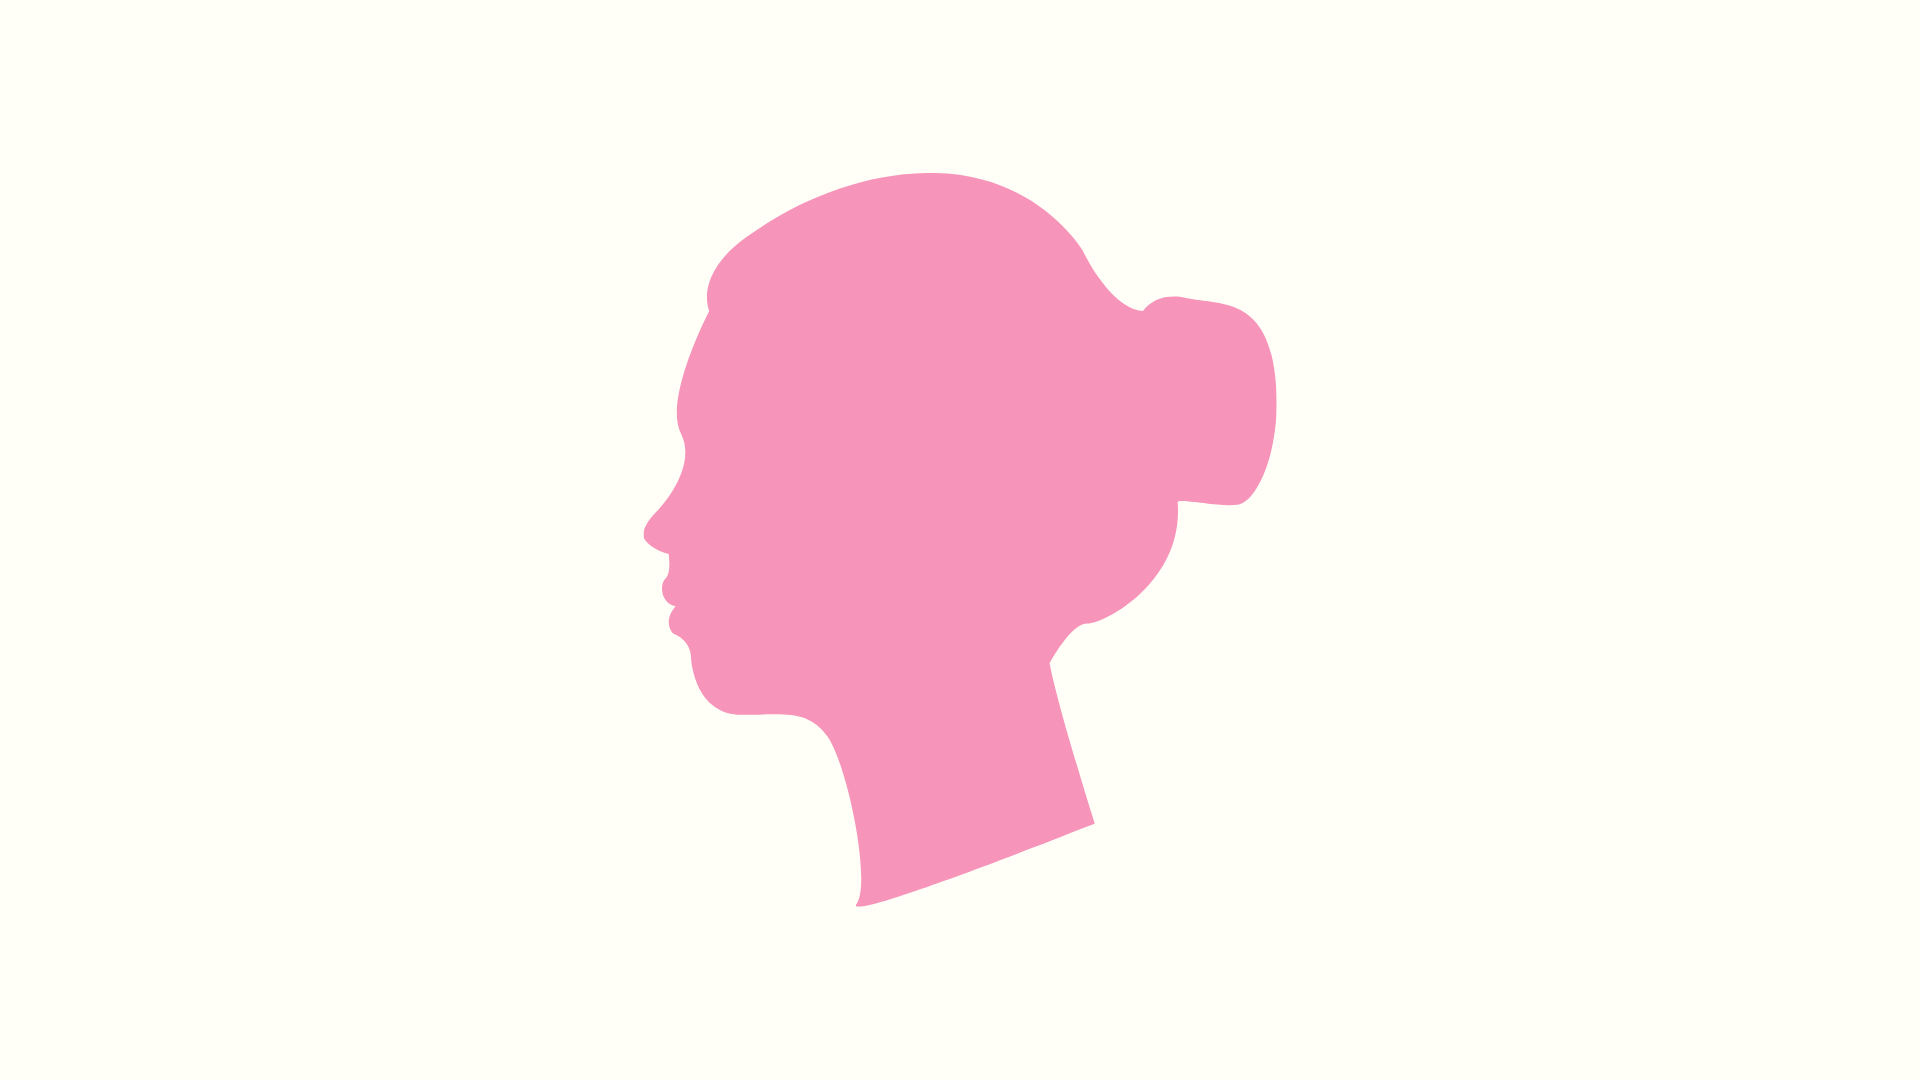 Illustration of a woman's bust outline that is pink.